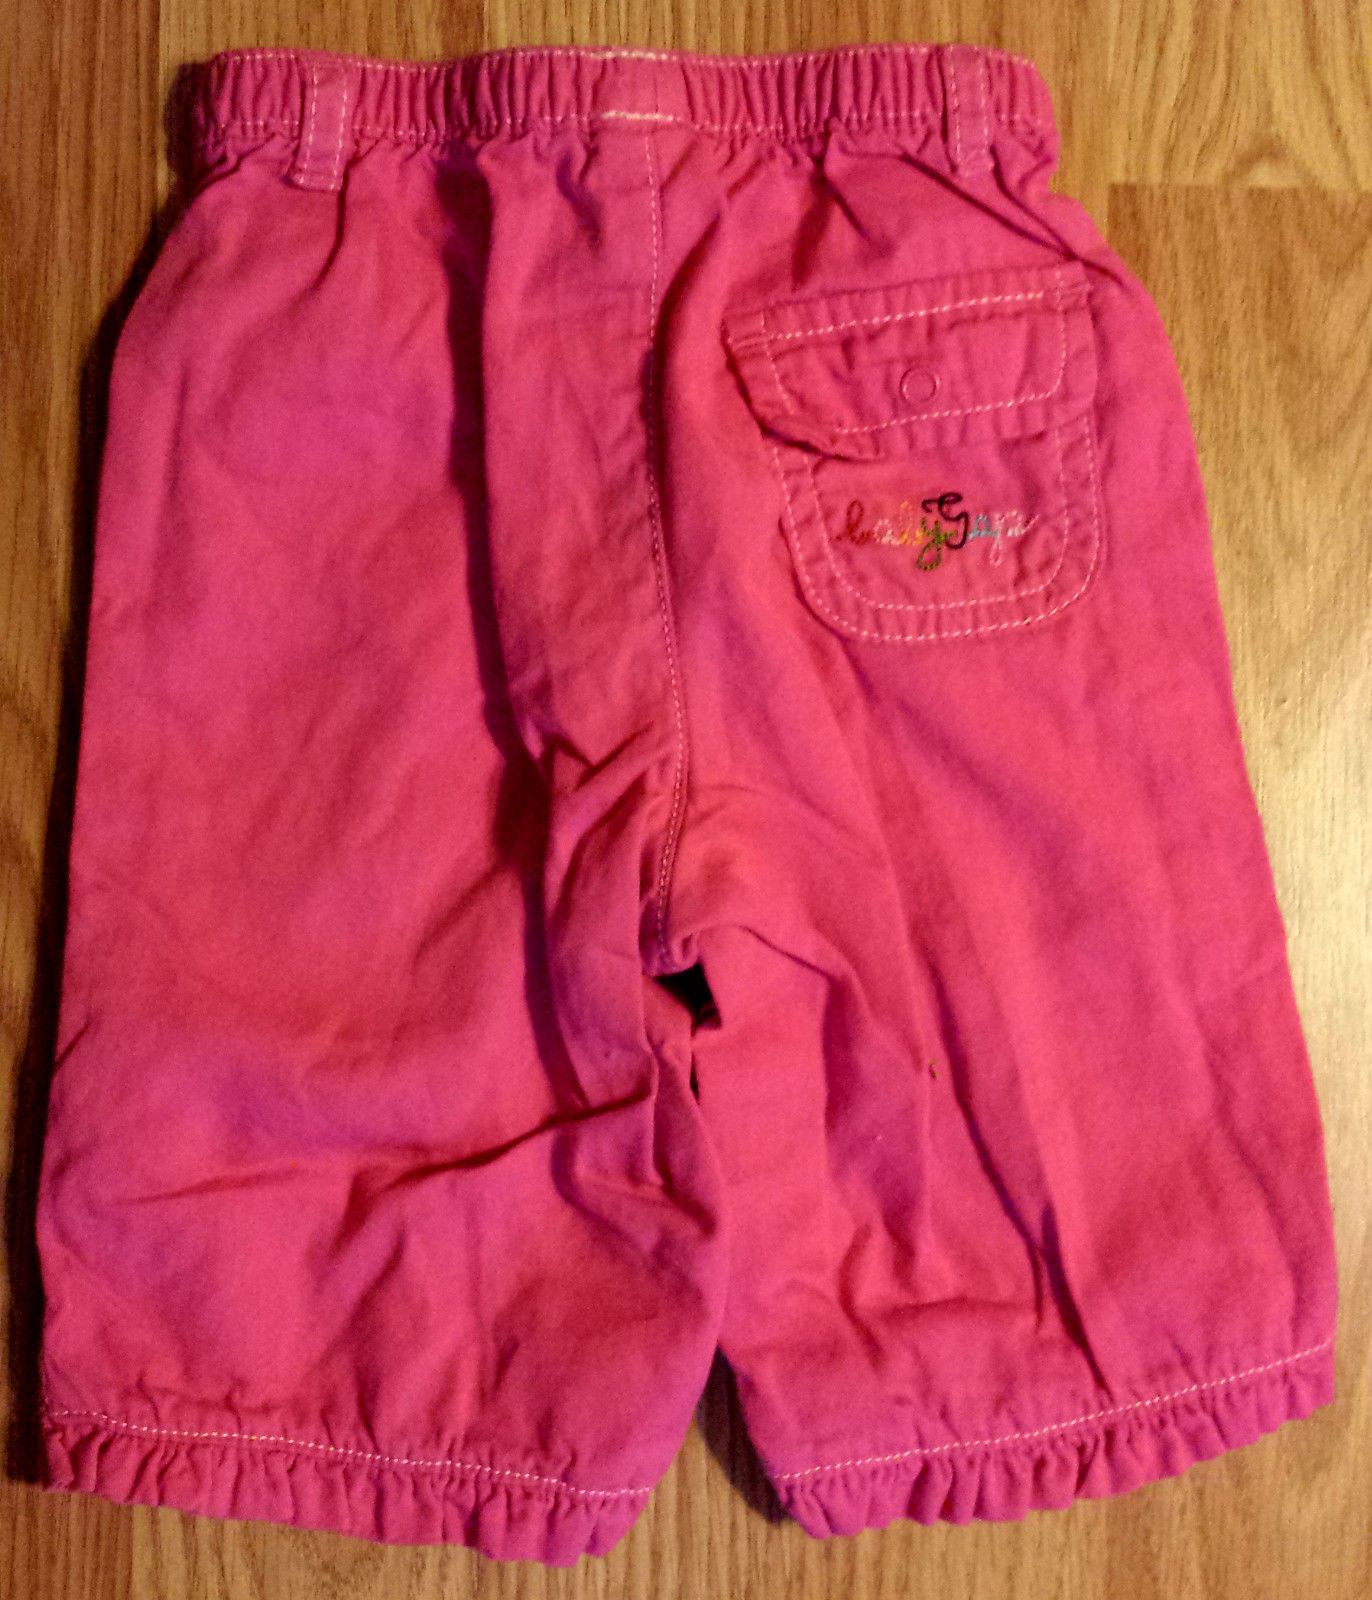 Girl's Size 0-3 M Months Two Pc White Carter's Top & Pink Baby Gap Rainbow Pants